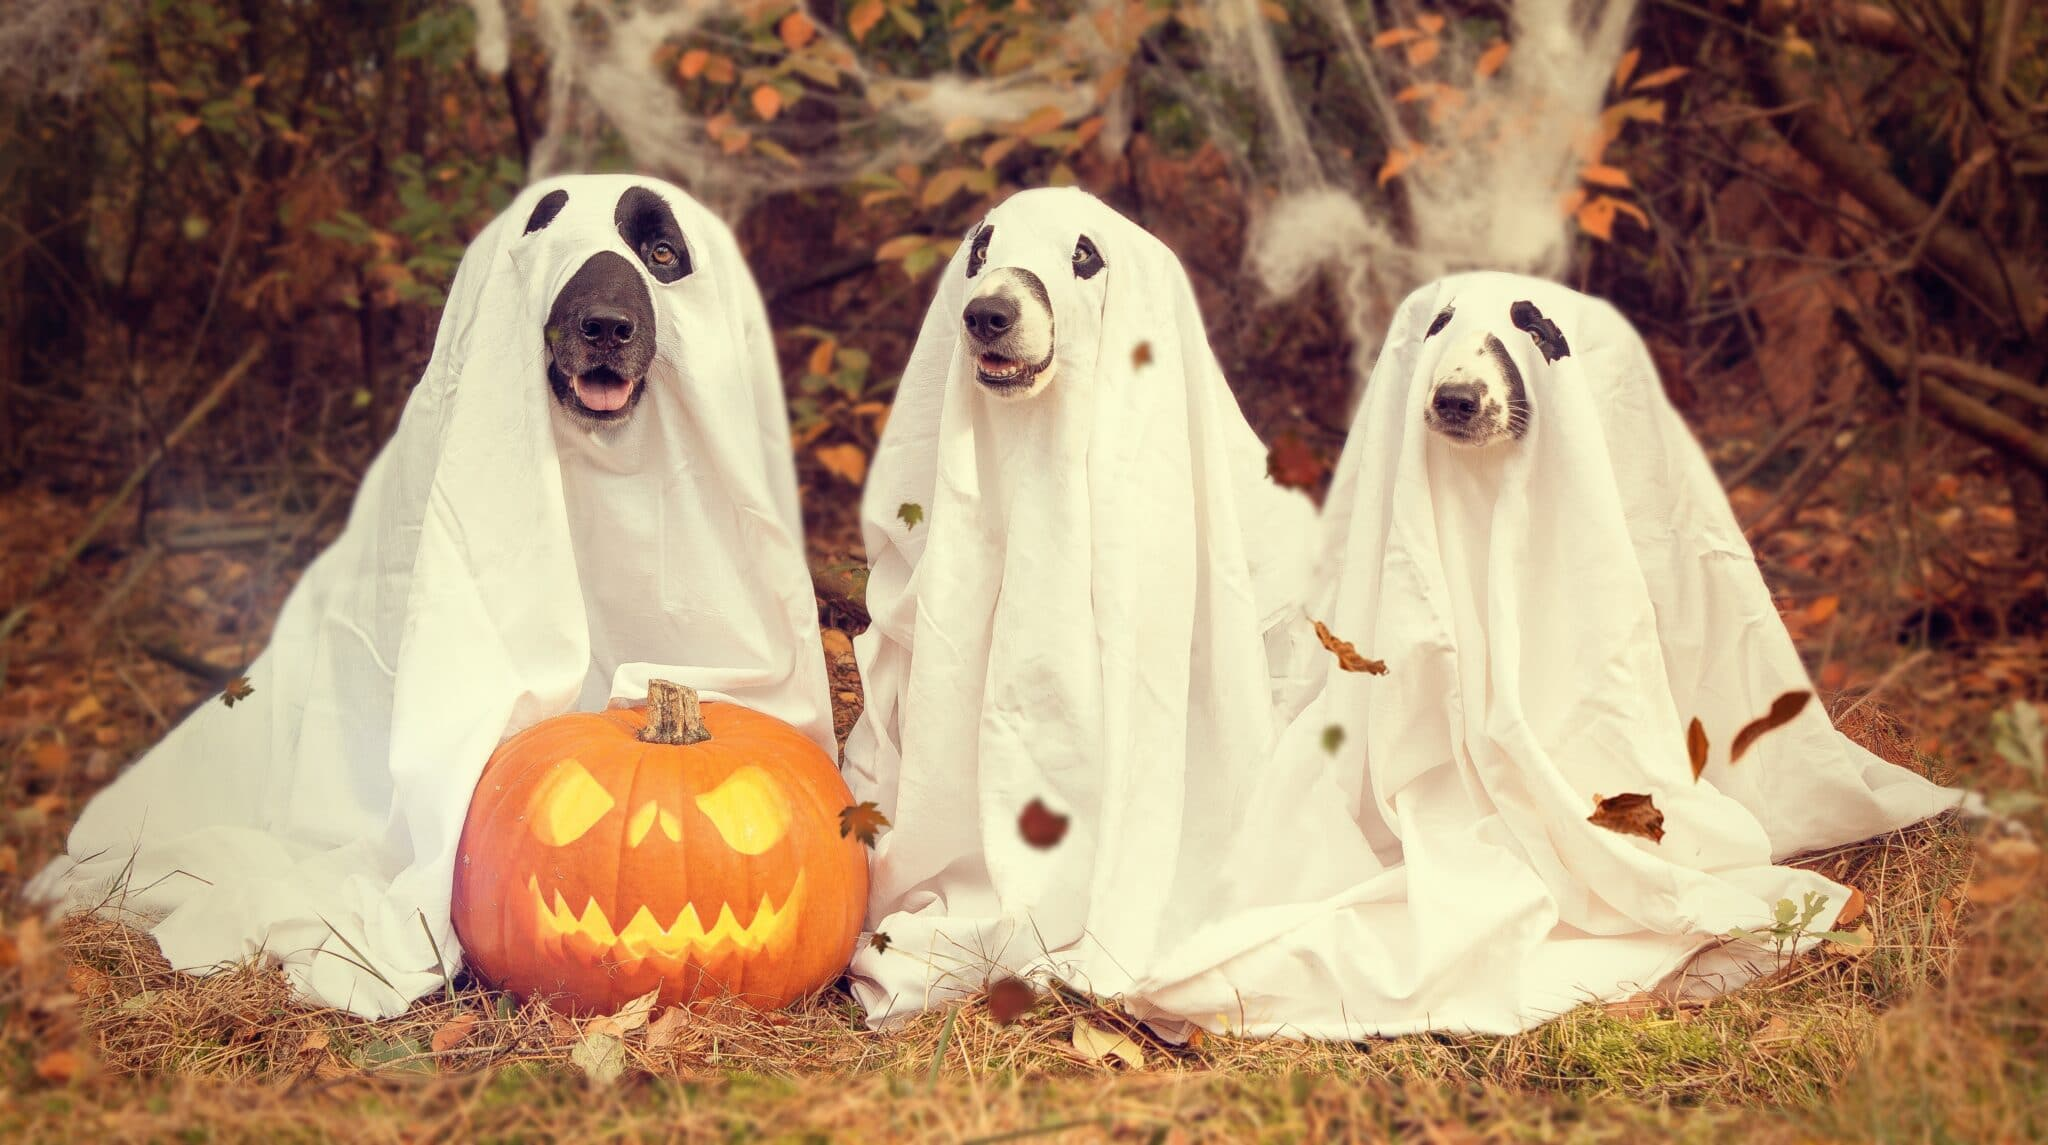 Halloween Trick or Treating Safely in the Tricky Year of 2020